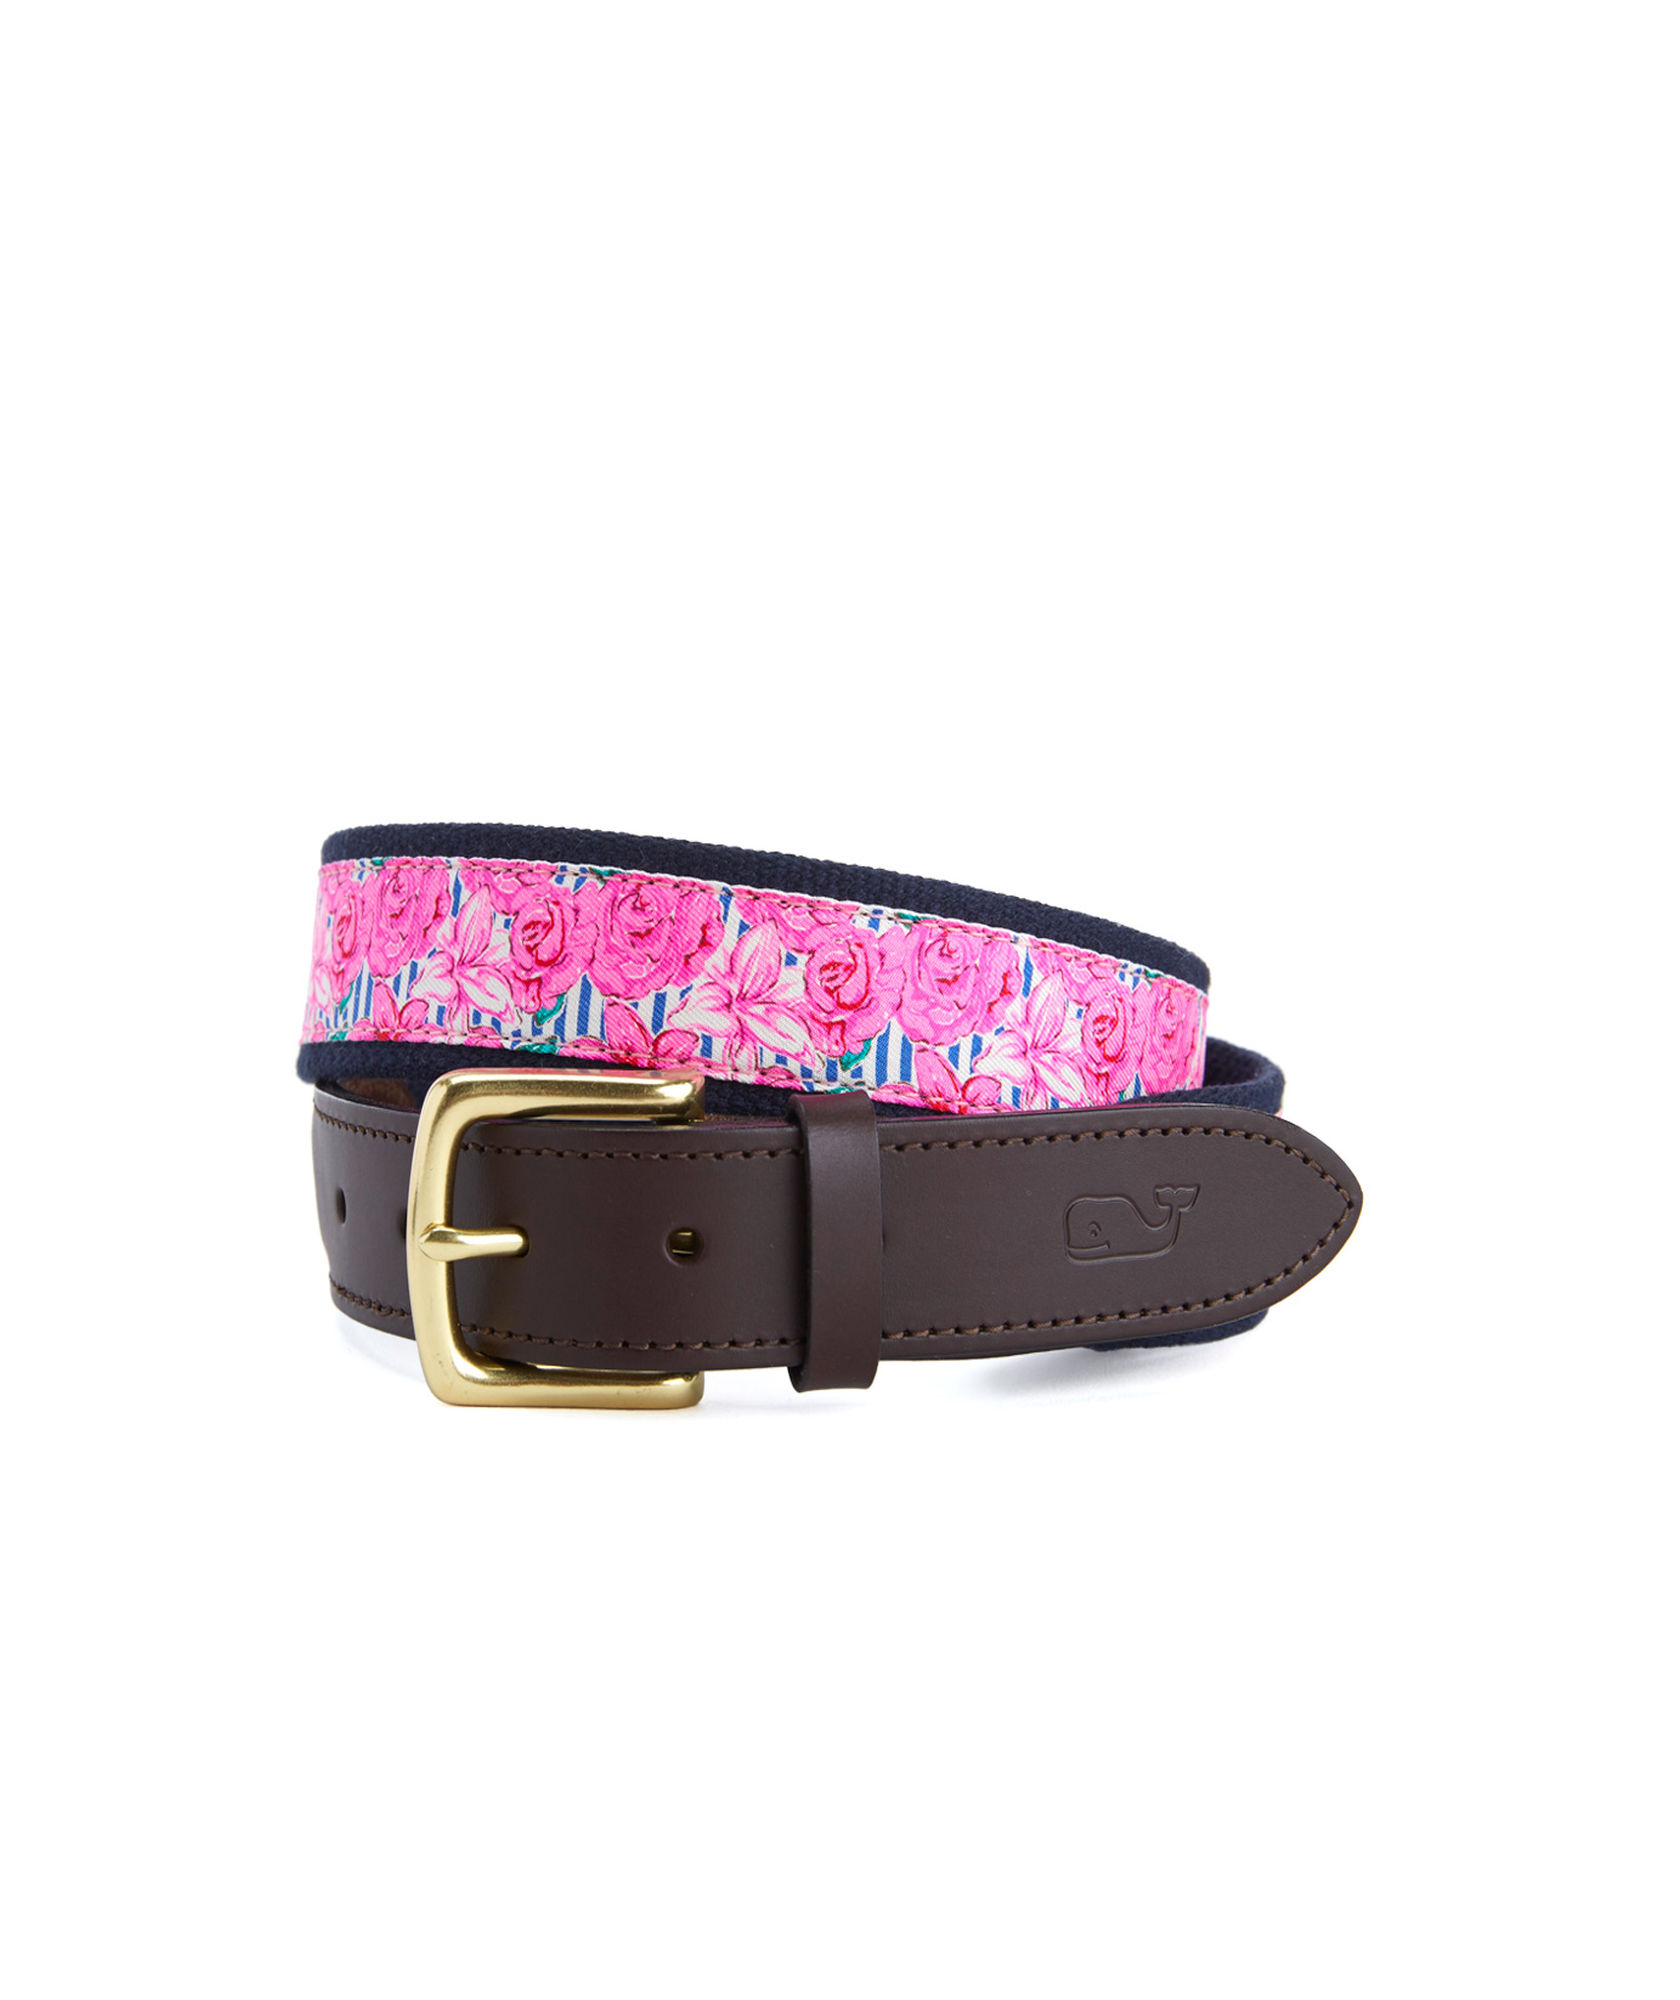 Vineyard Vines 2017 Run for the Roses Belt,1A19653